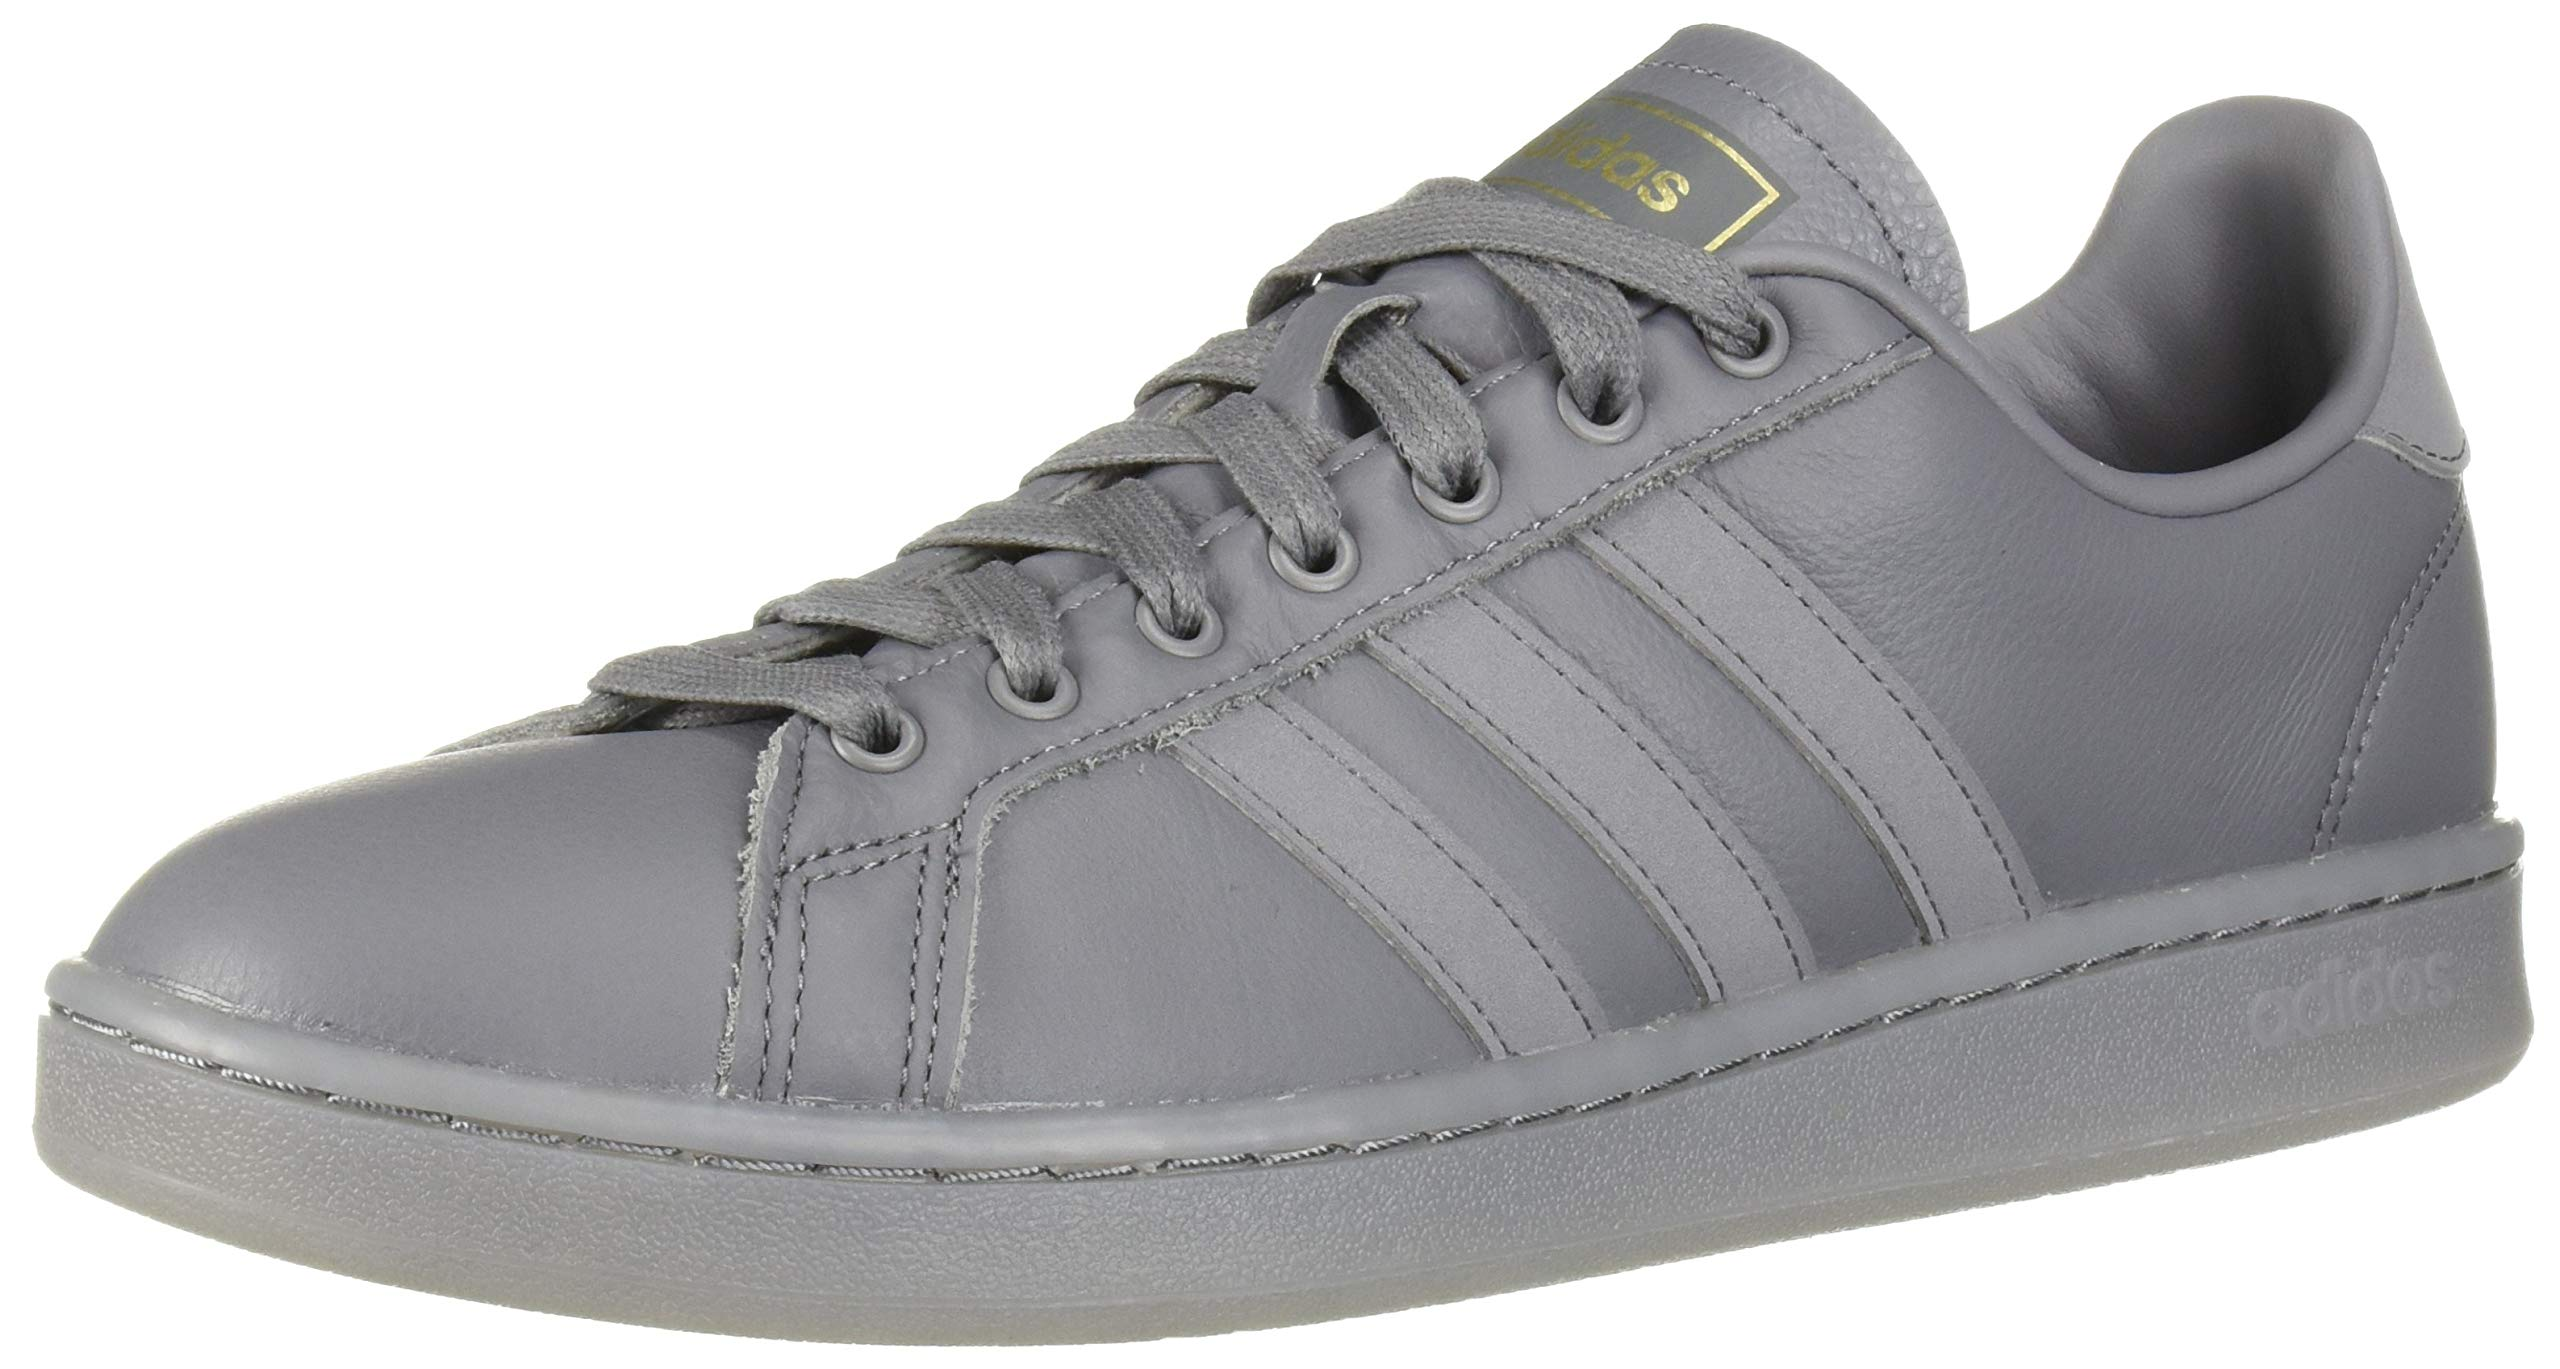 adidas Men's Grand Court Sneaker, Grey/Matte Gold, 7 M US